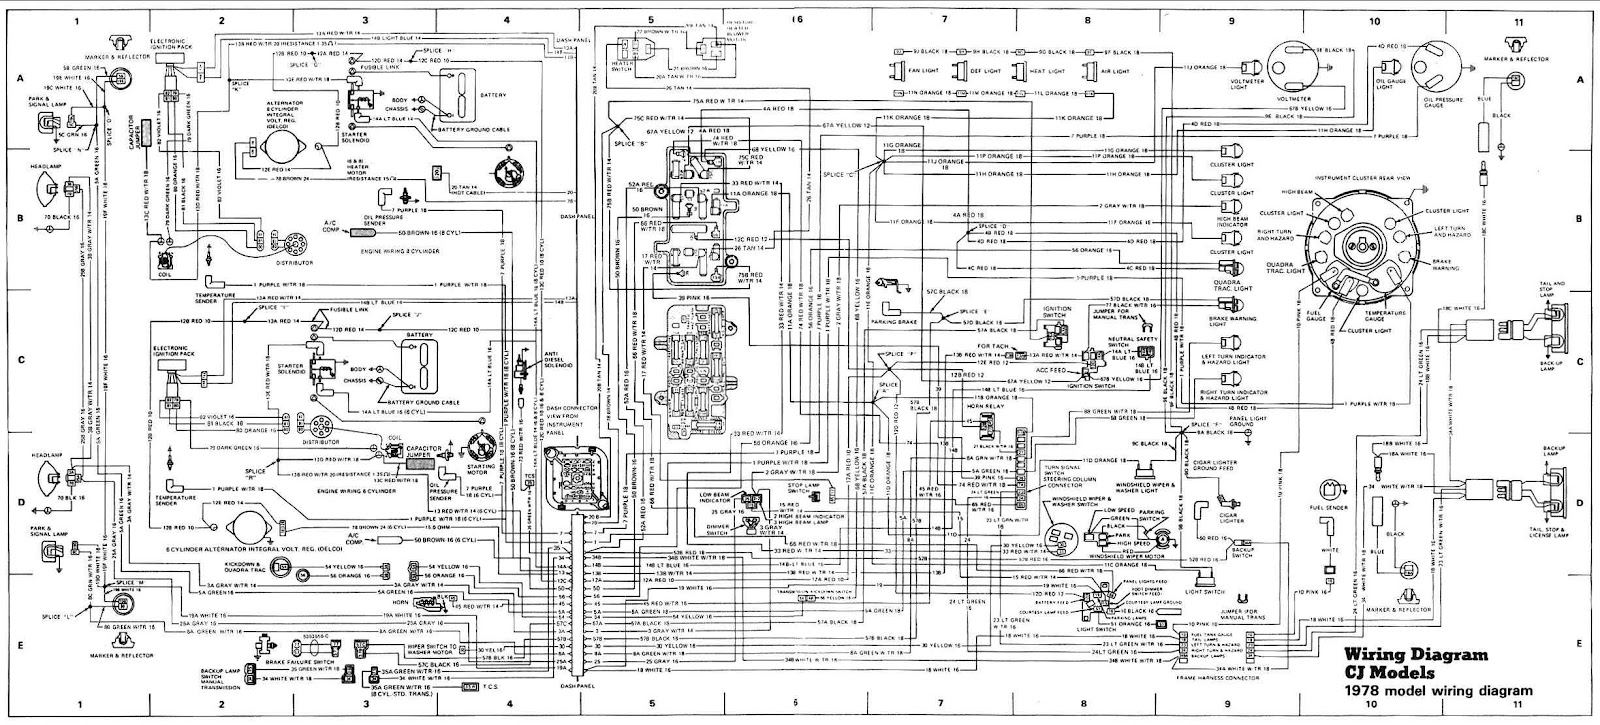 Jeep Cj Models 1978 Complete Electrical Wiring Diagram